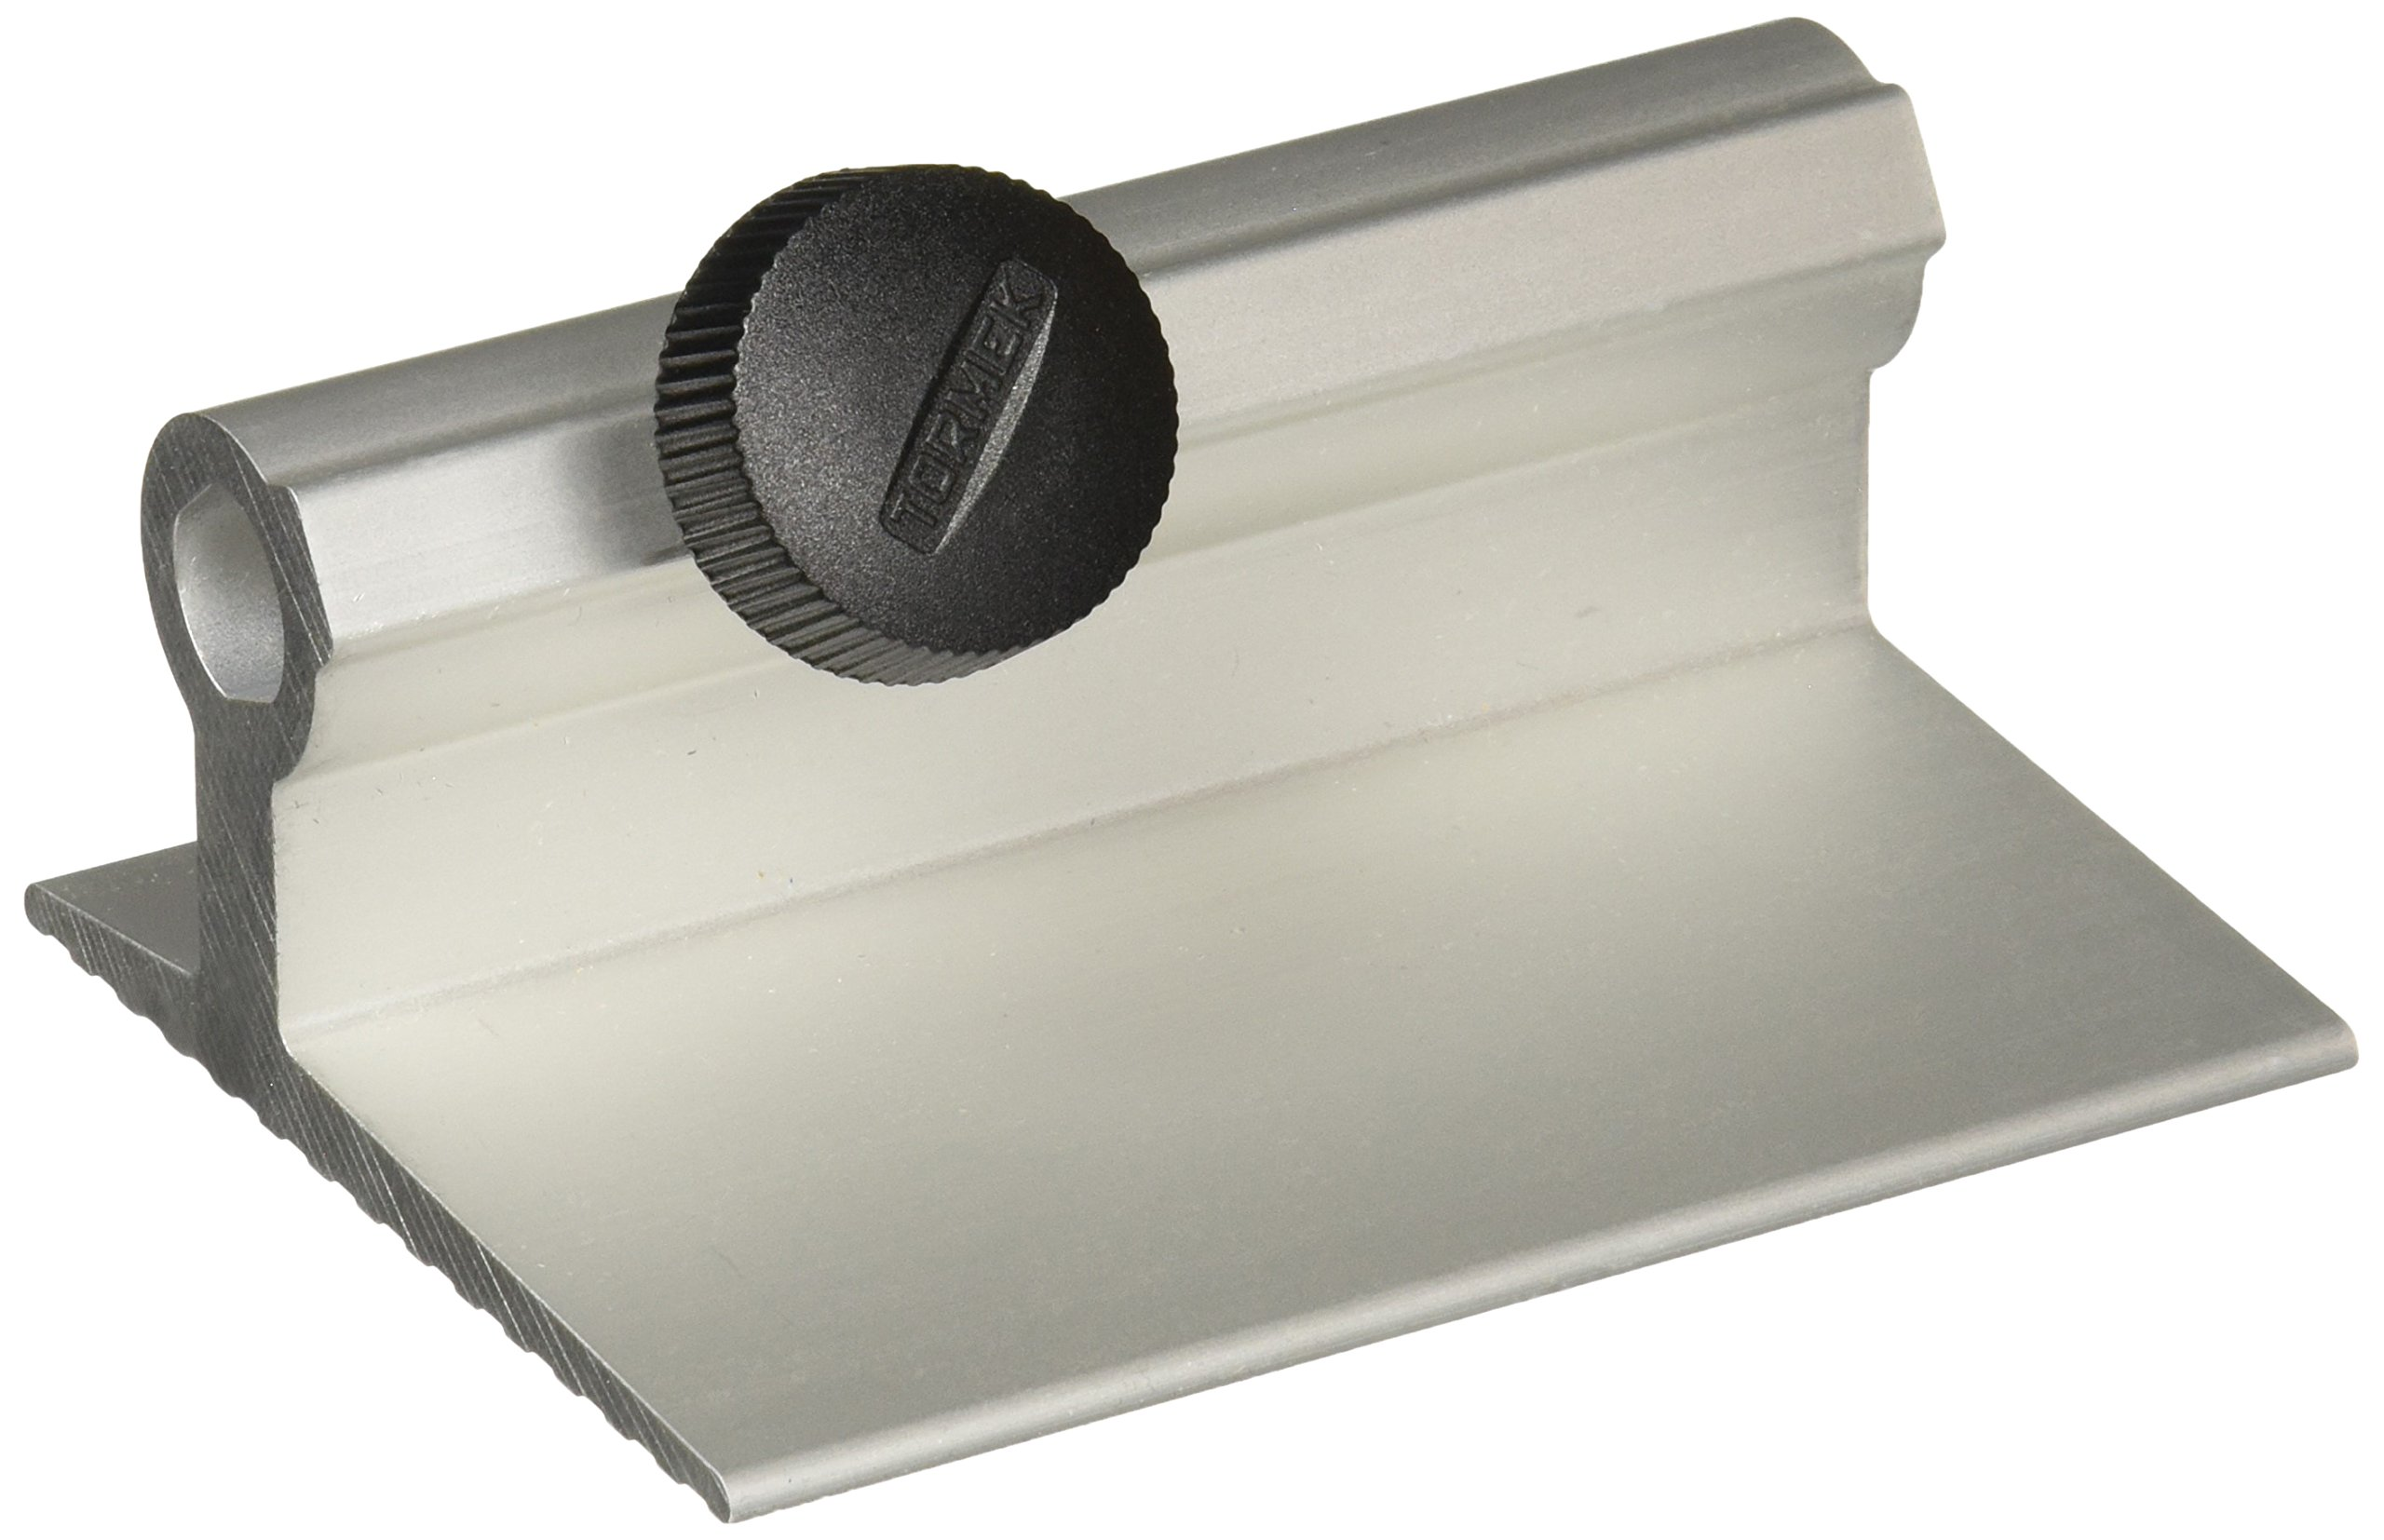 Tormek SVD-110 Tool Rest with Torlock by Tormek (Image #2)